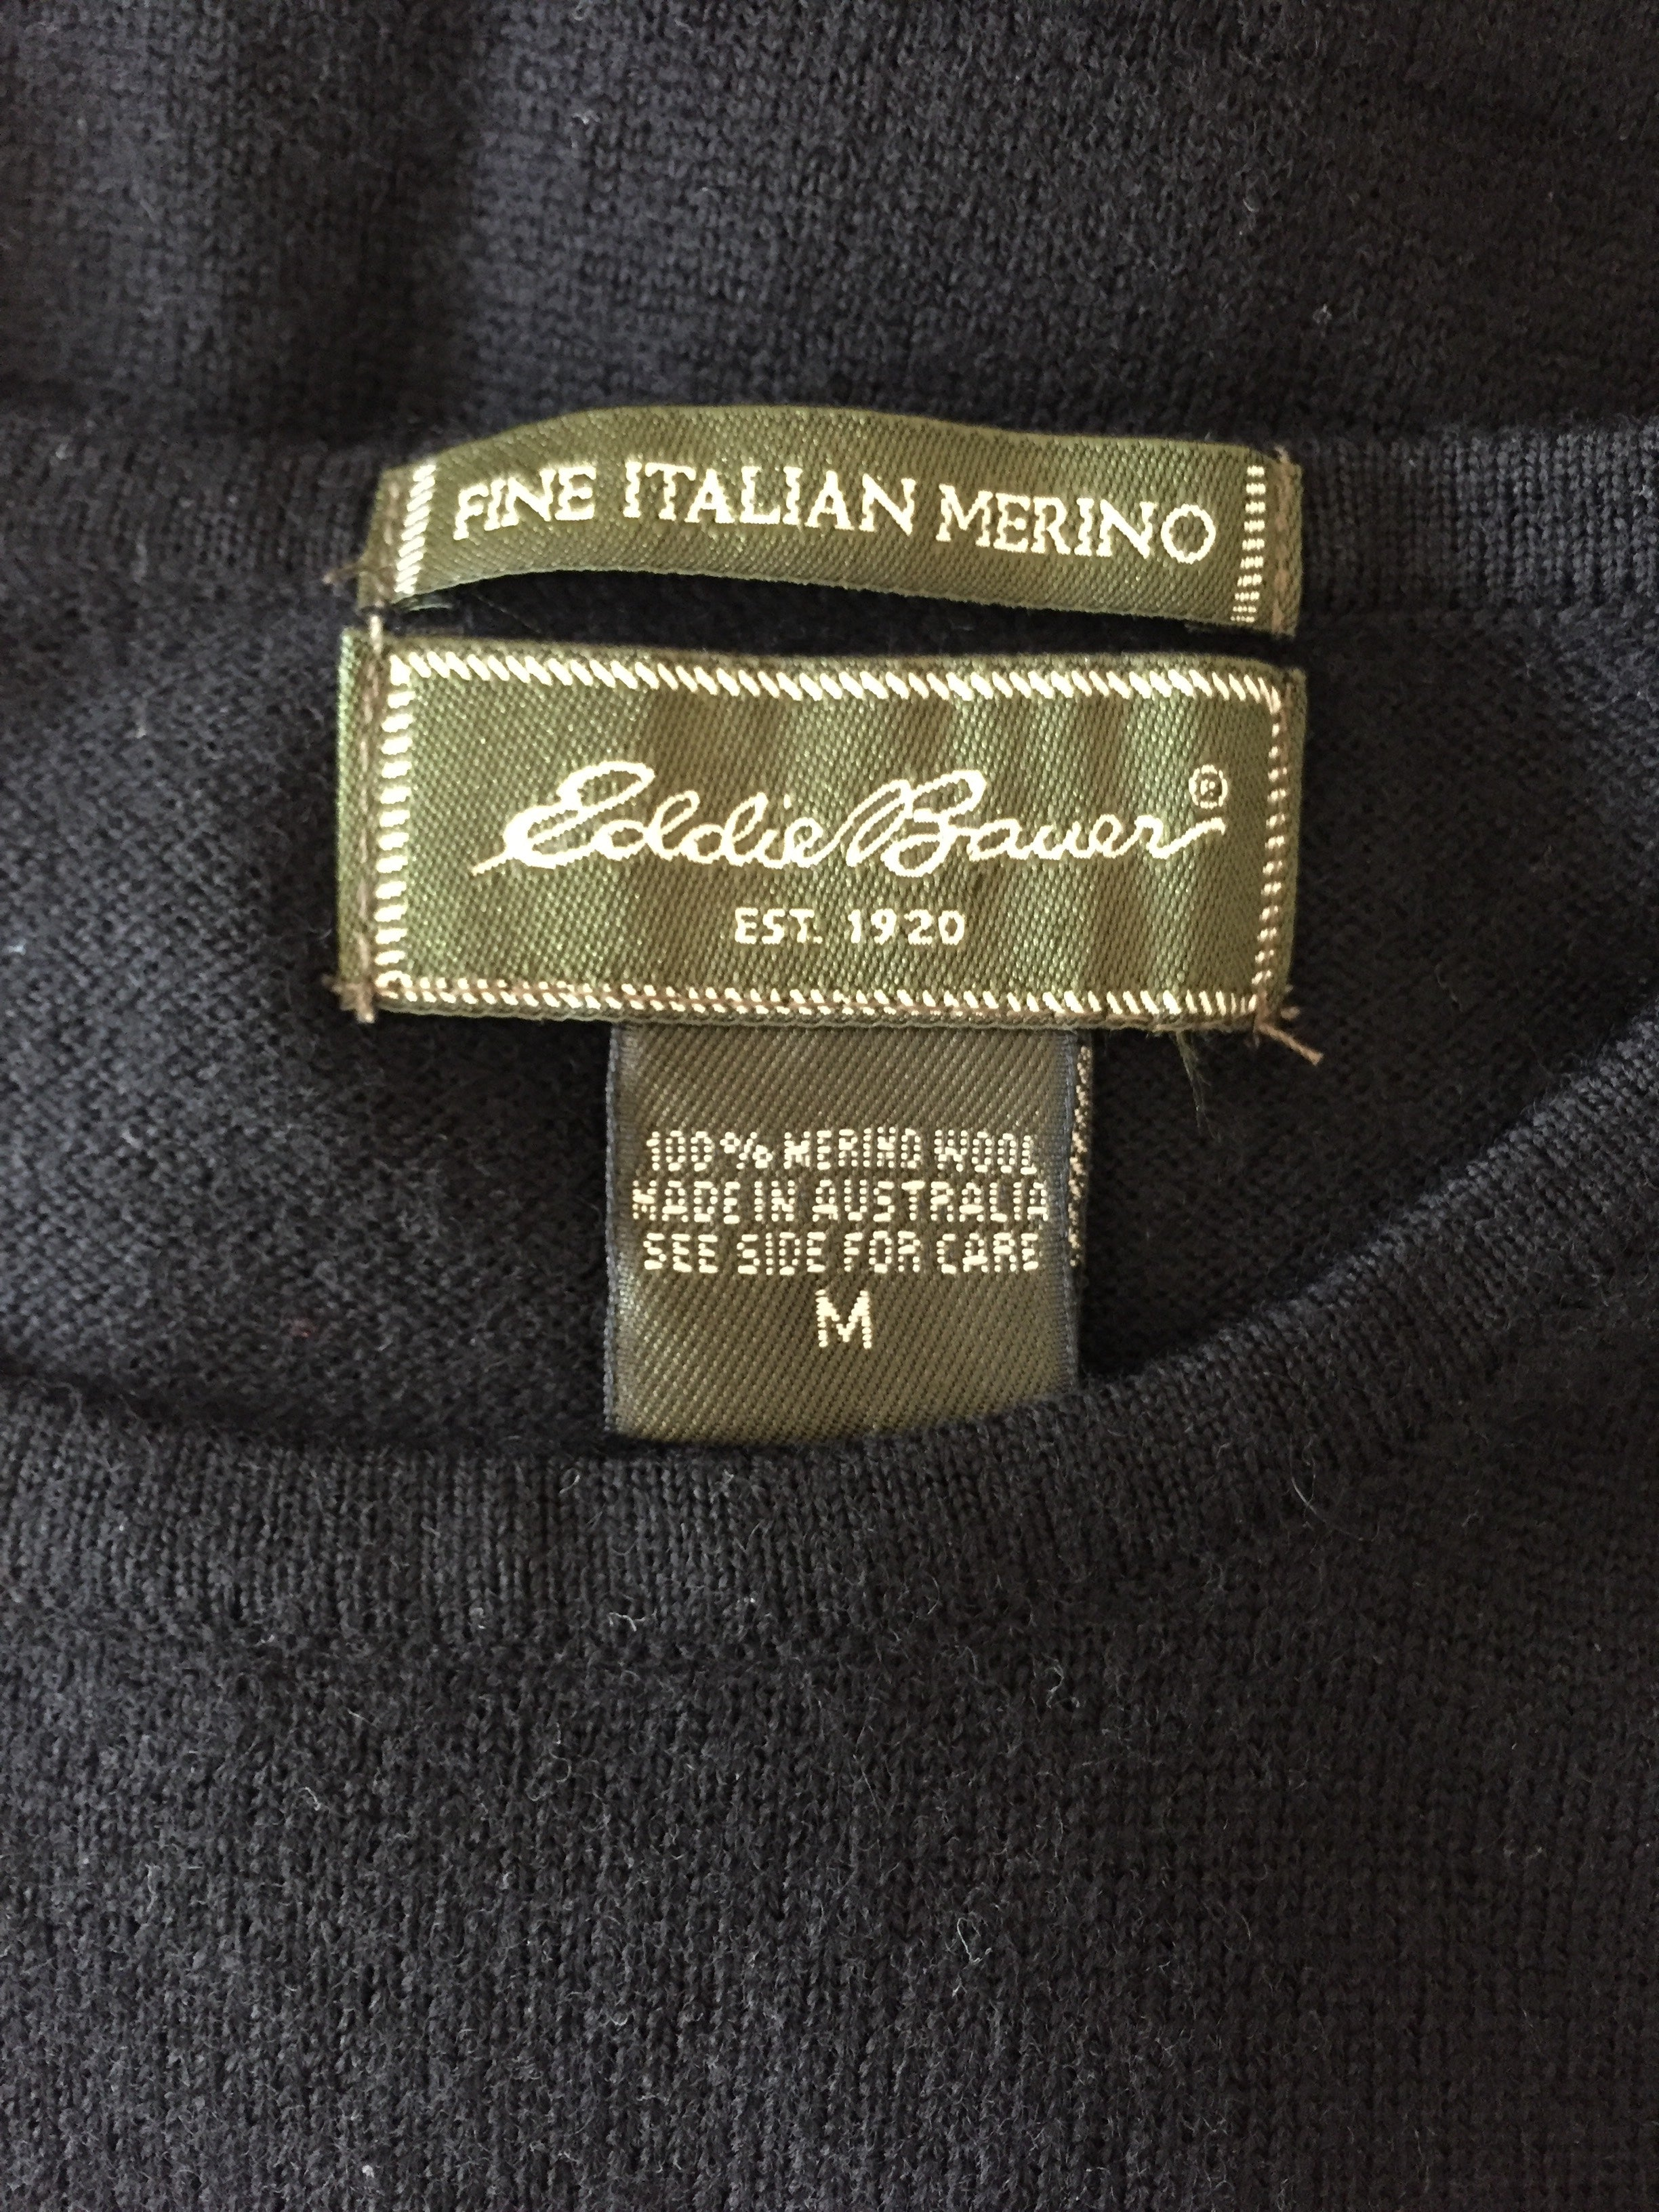 Eddie Bauer Merino Wool knit top